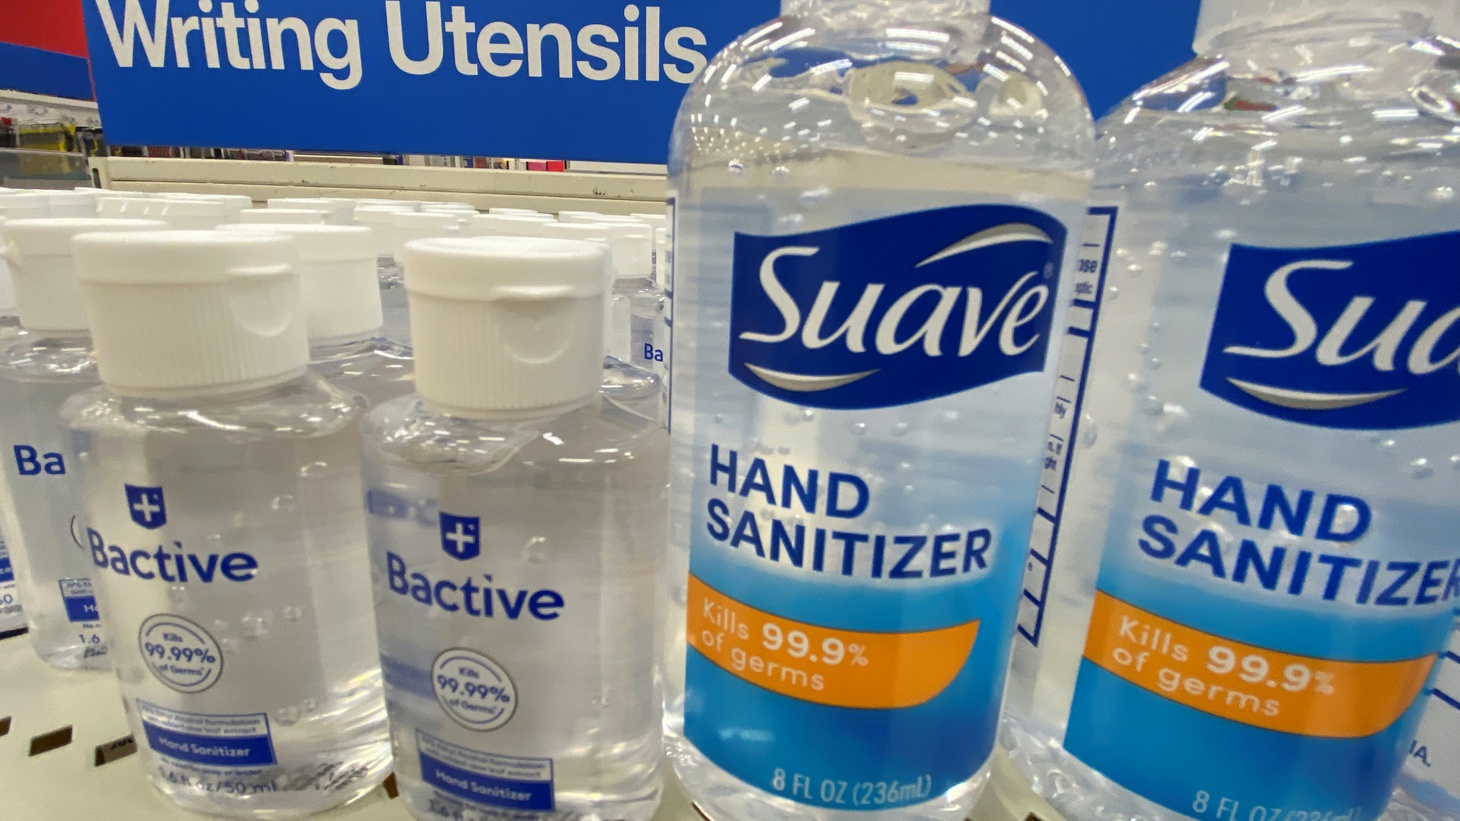 Hand sanitizer is shown near writing instruments at a Target store during the outbreak of COVID-19 in Encinitas, California, U.S., July 28, 2020.